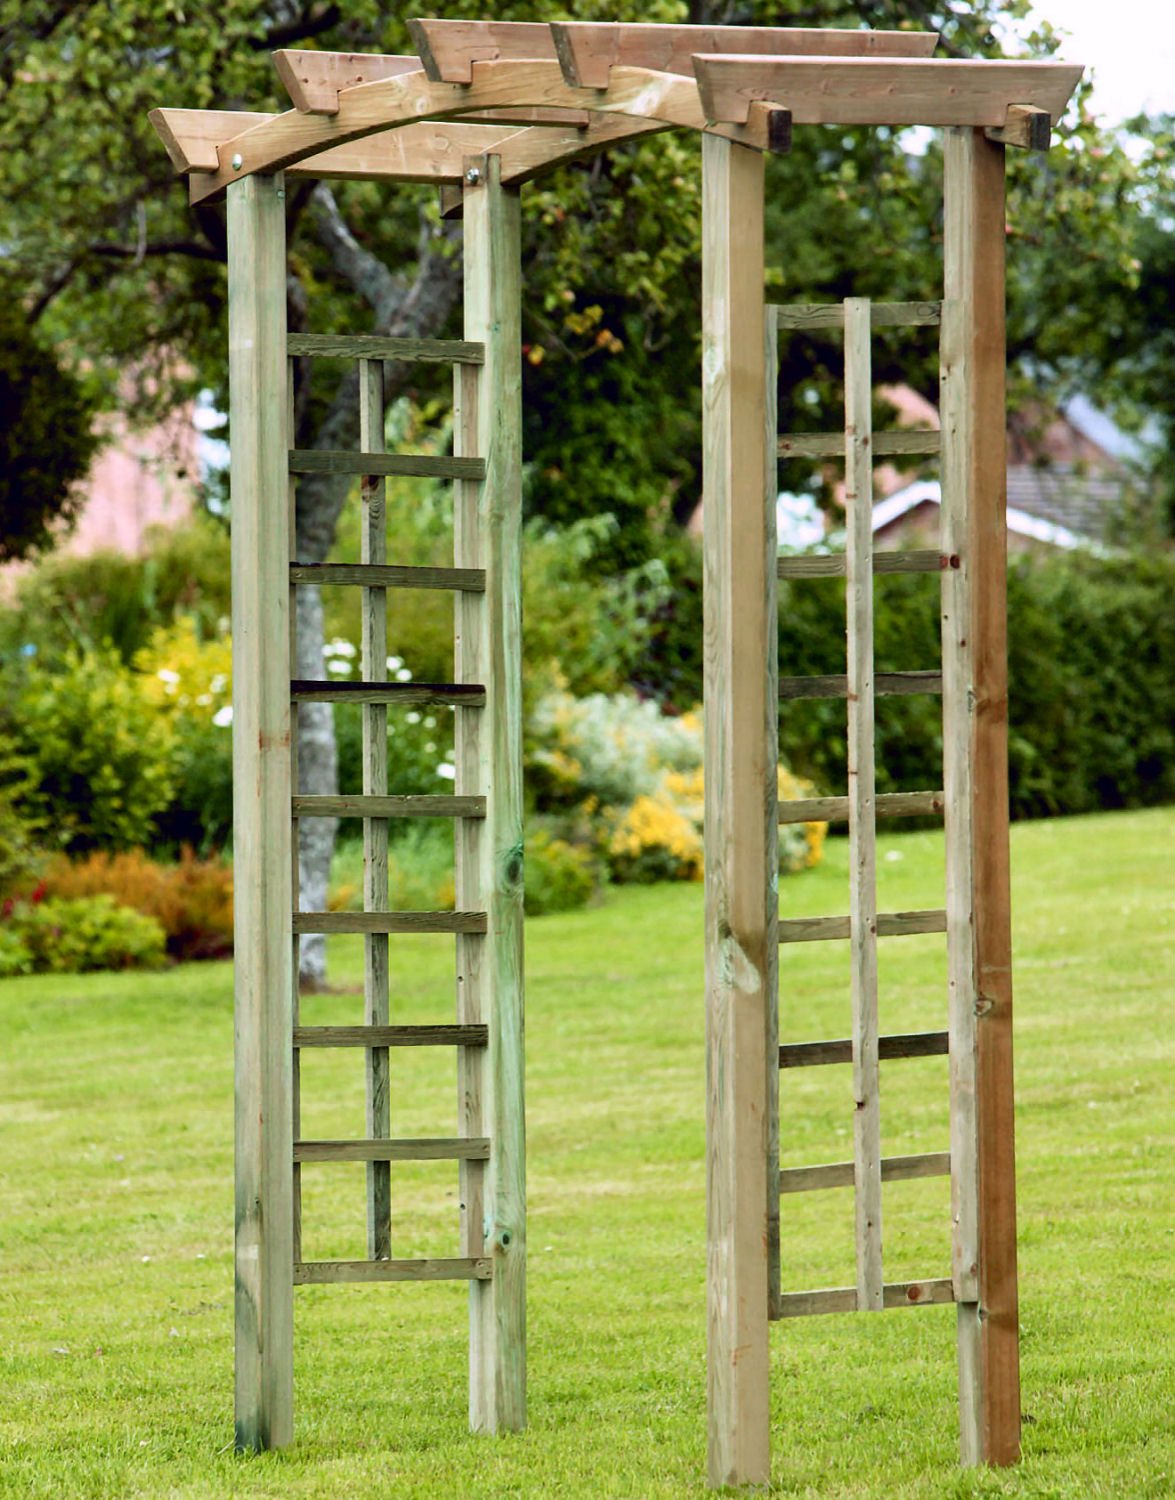 Arbours arches taunton somerset taunton sheds toys for Garden arches designs